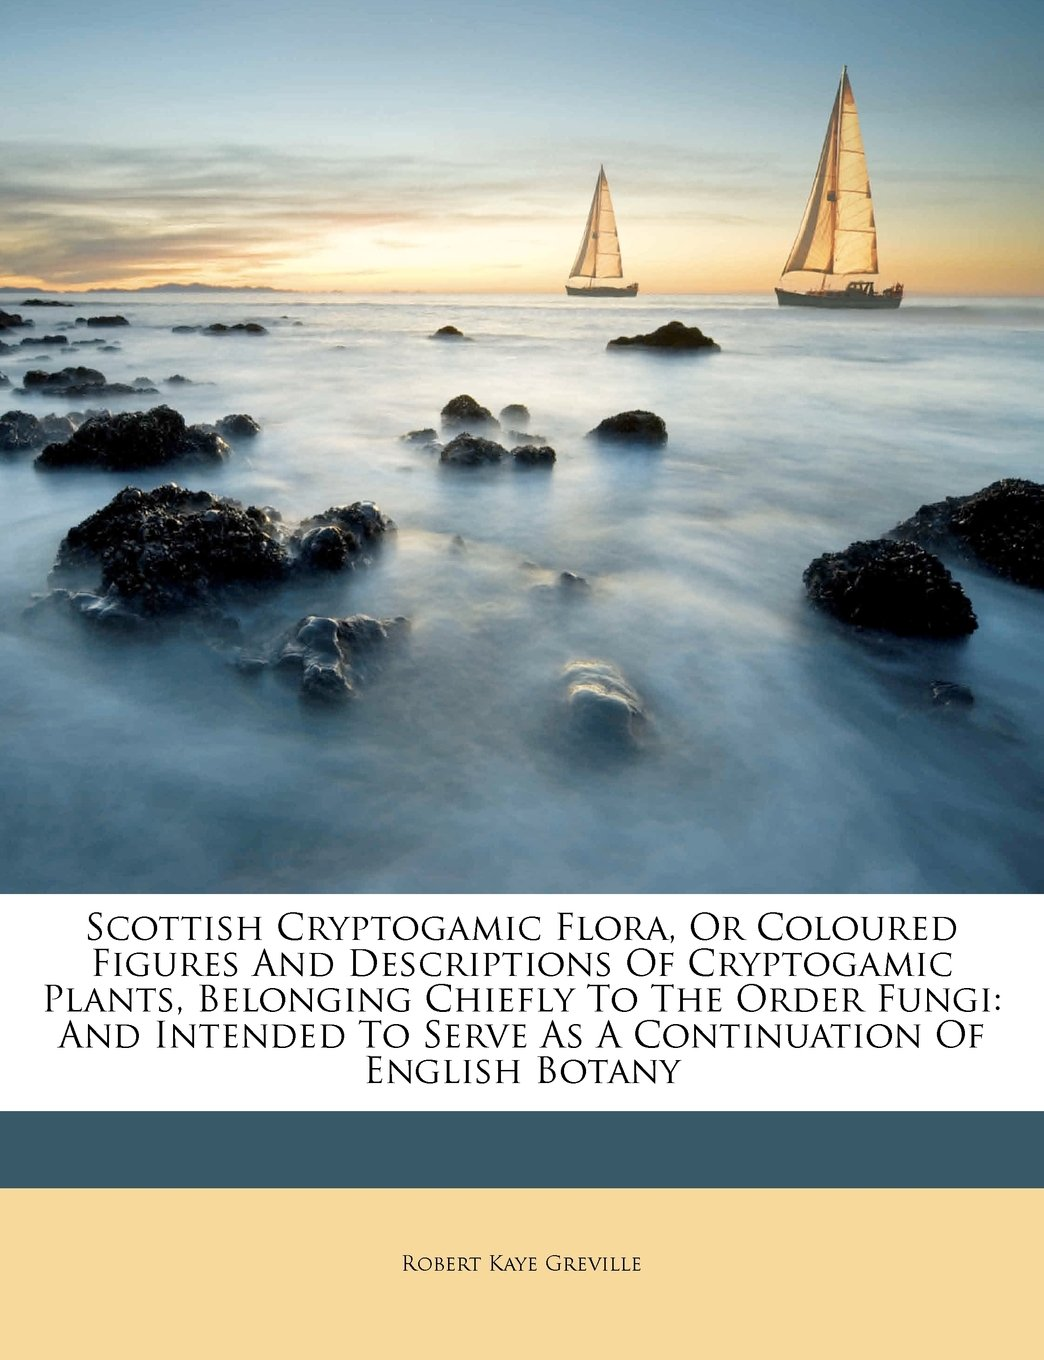 Download Scottish Cryptogamic Flora, Or Coloured Figures And Descriptions Of Cryptogamic Plants, Belonging Chiefly To The Order Fungi: And Intended To Serve As A Continuation Of English Botany pdf